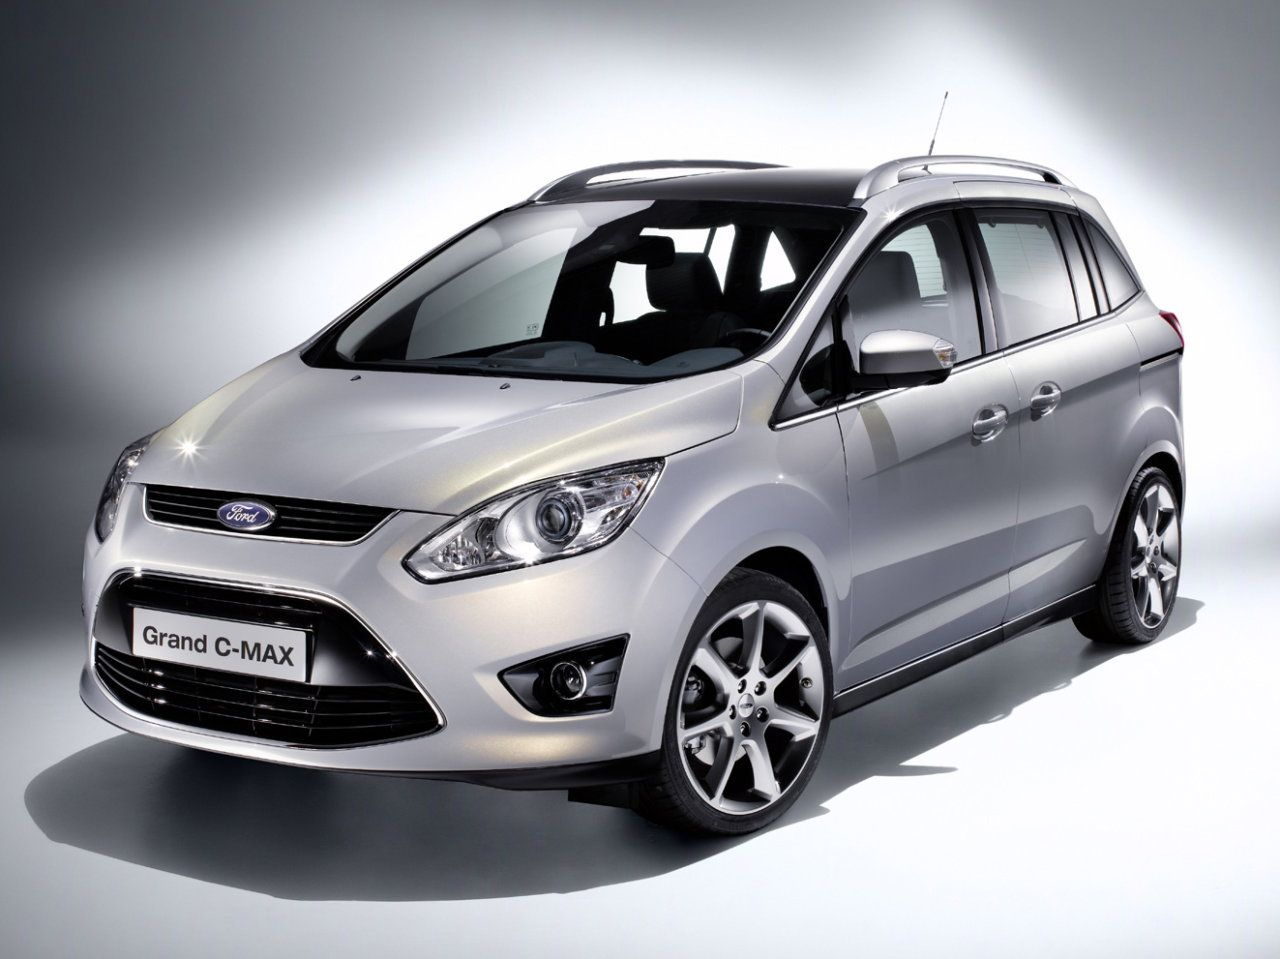 Explore the ford c max and grand c max family mpvs and discover their